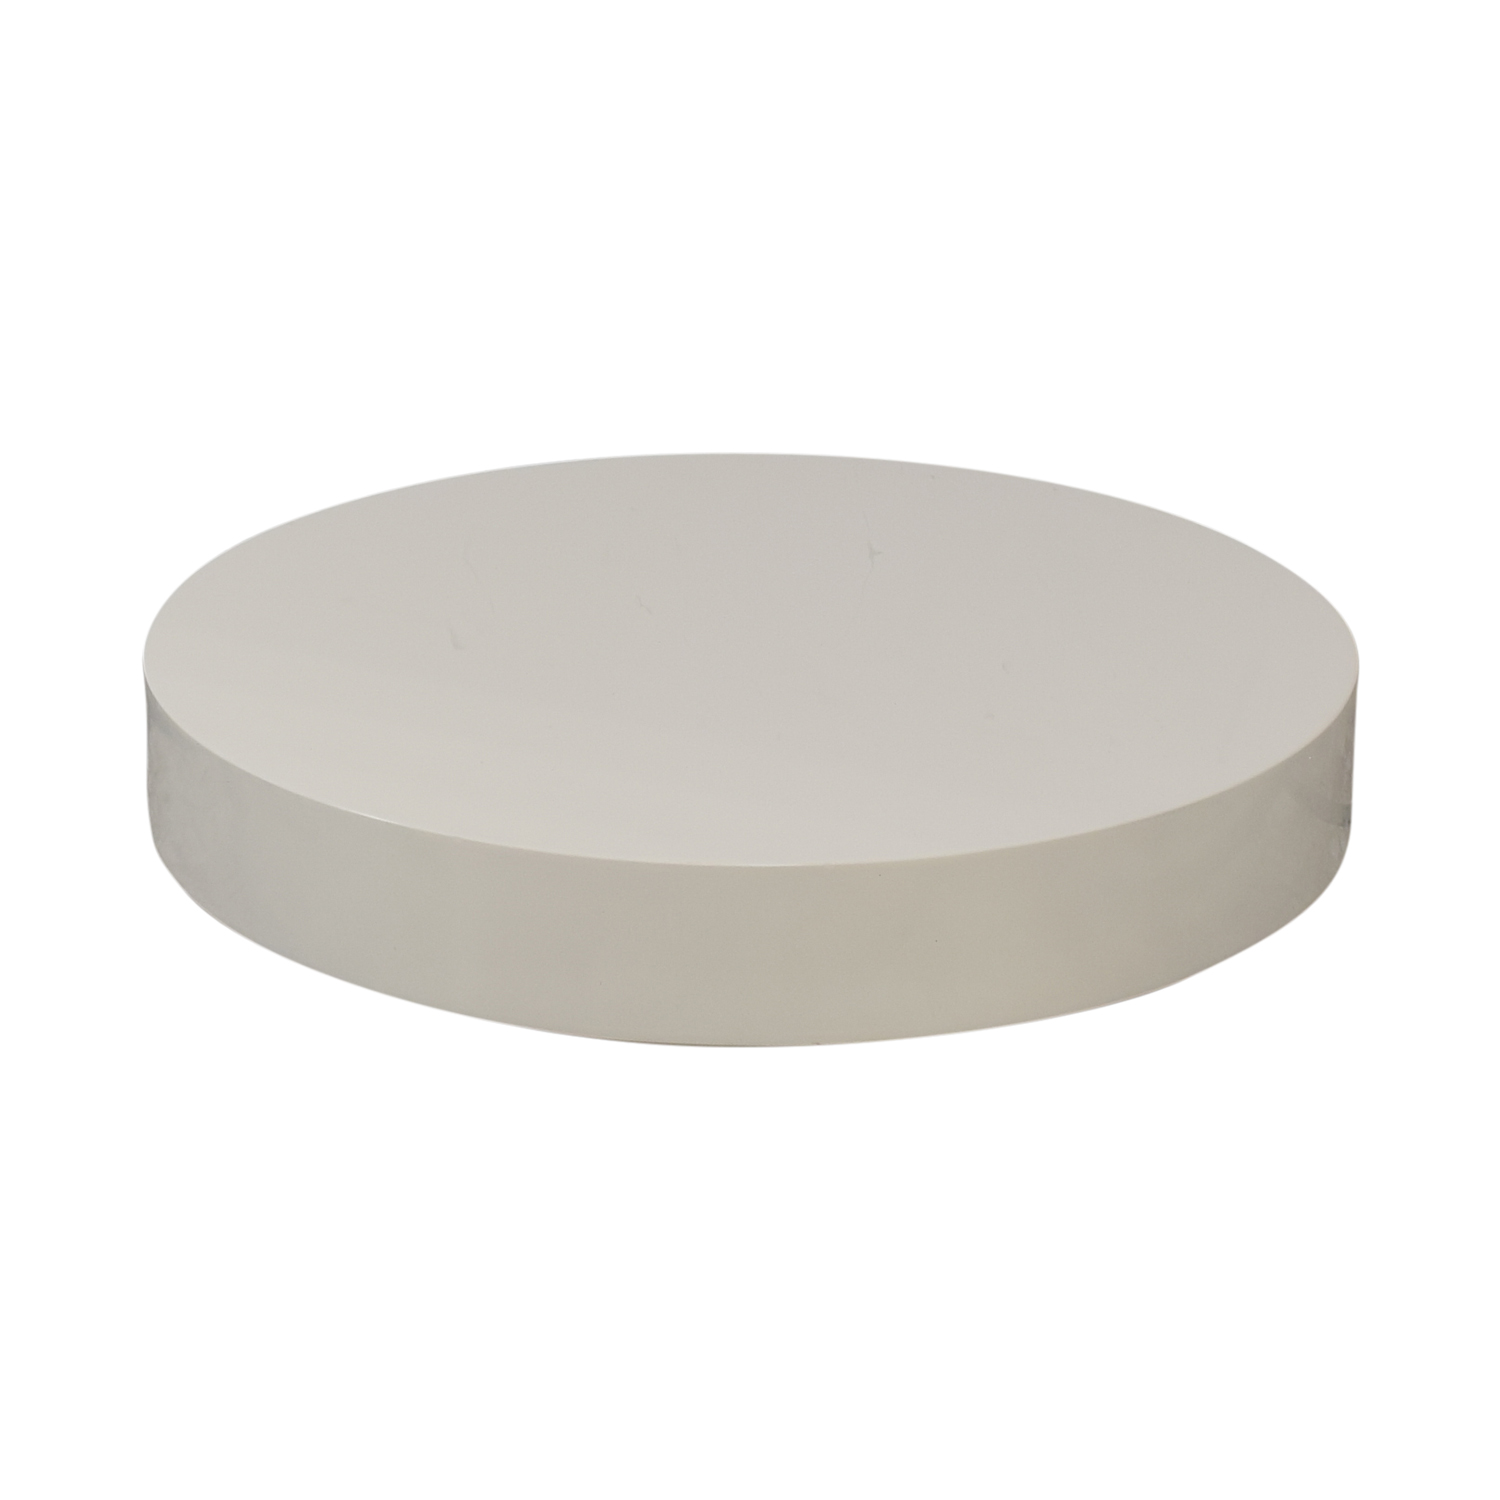 72% OFF - Large Round Italian Maker Coffee Table / Tables